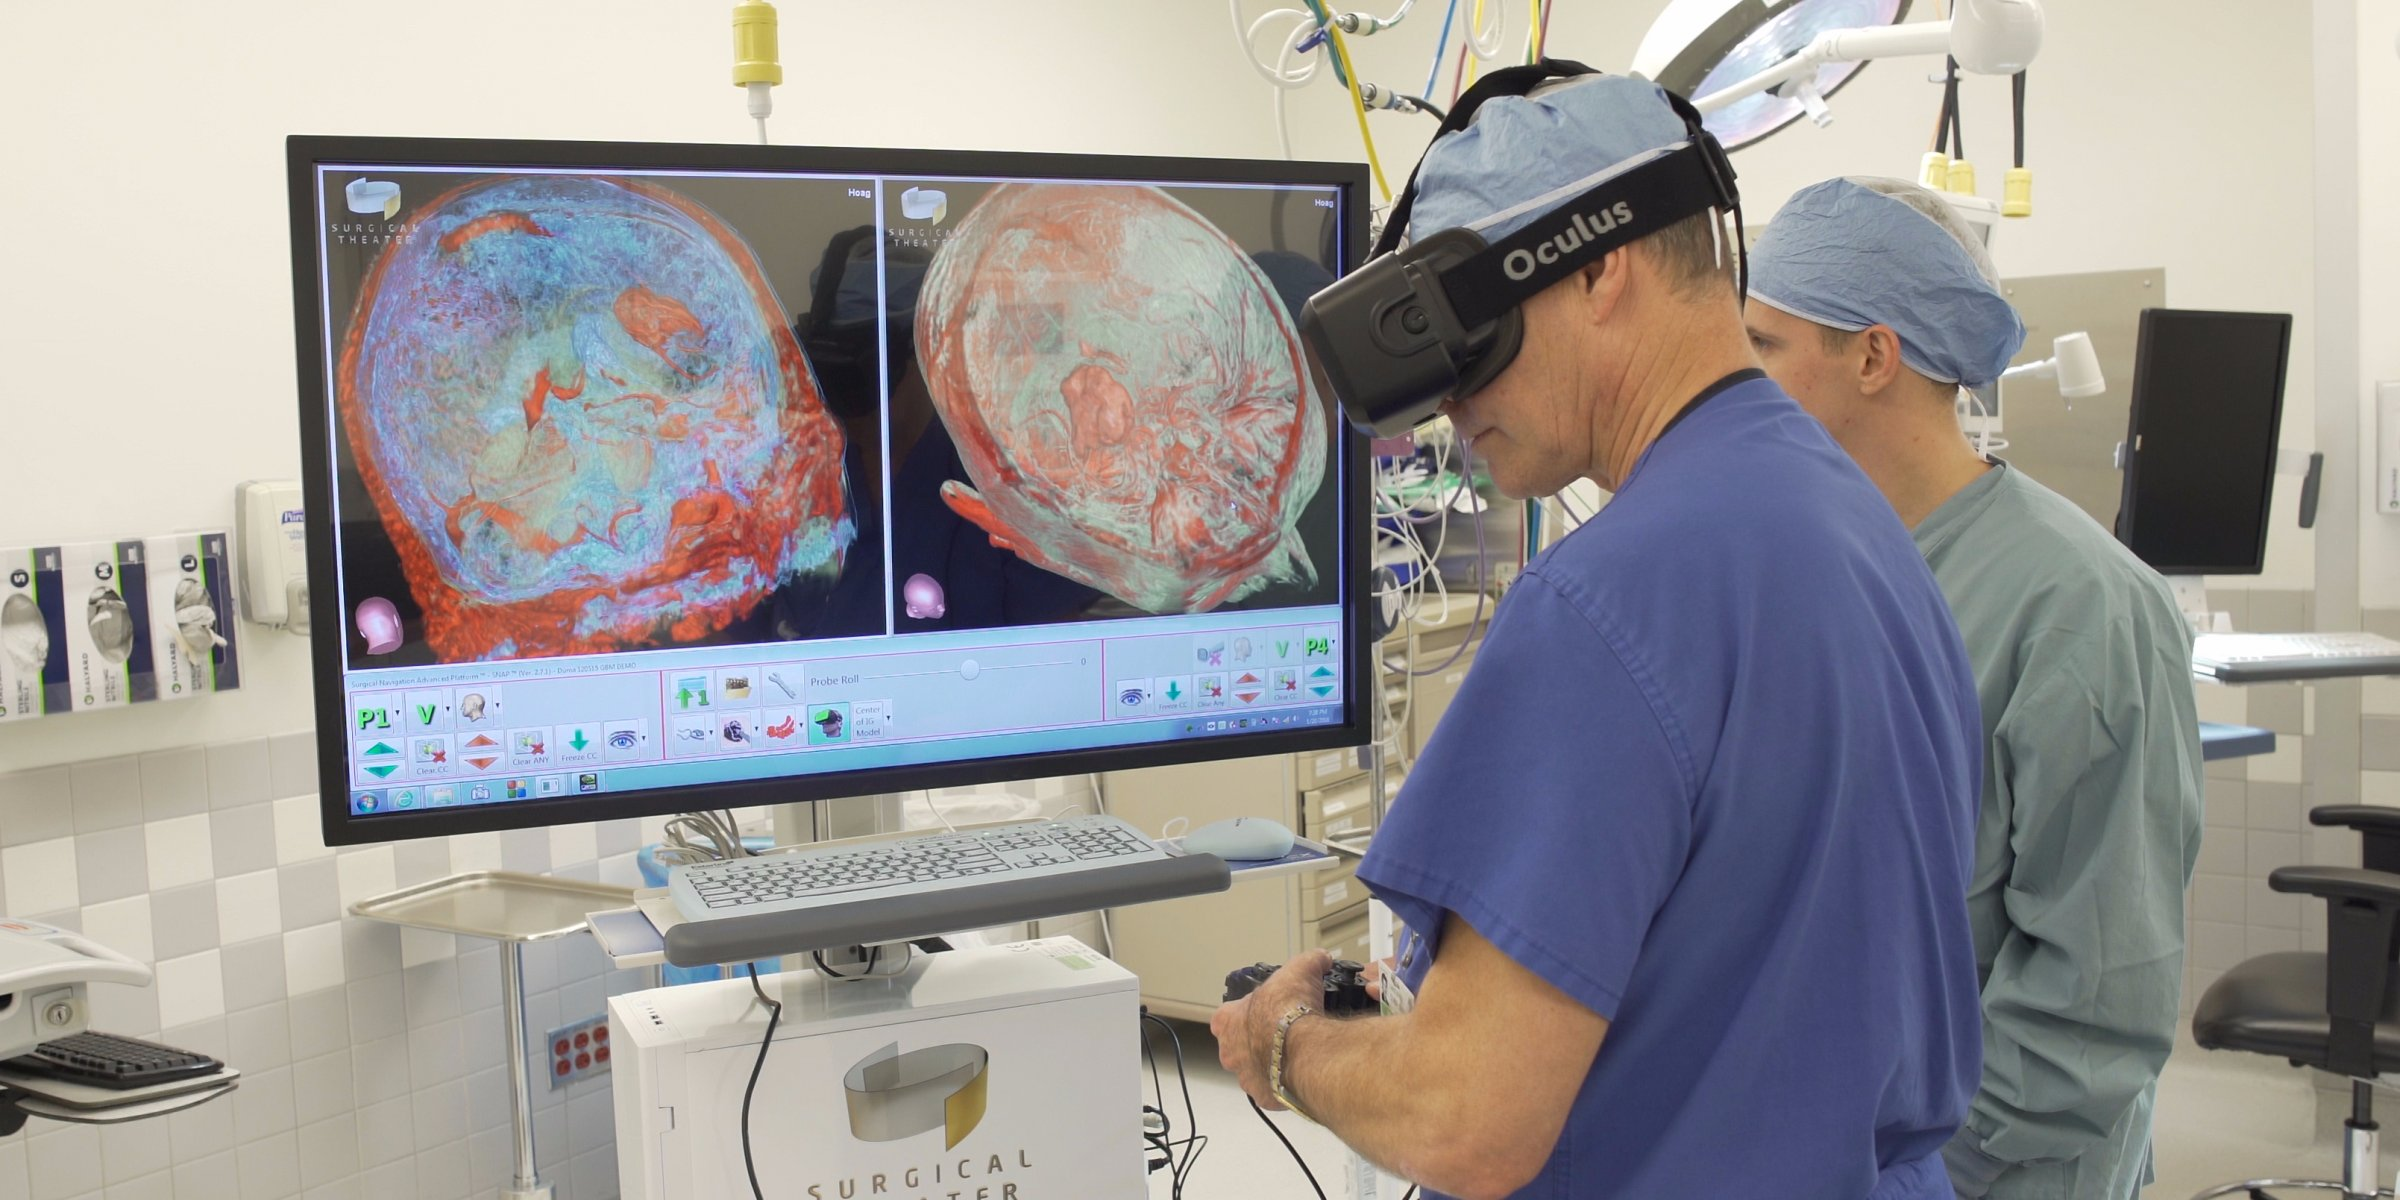 AR & VR in Healthcare Market Expected to Reach $5.1 ...